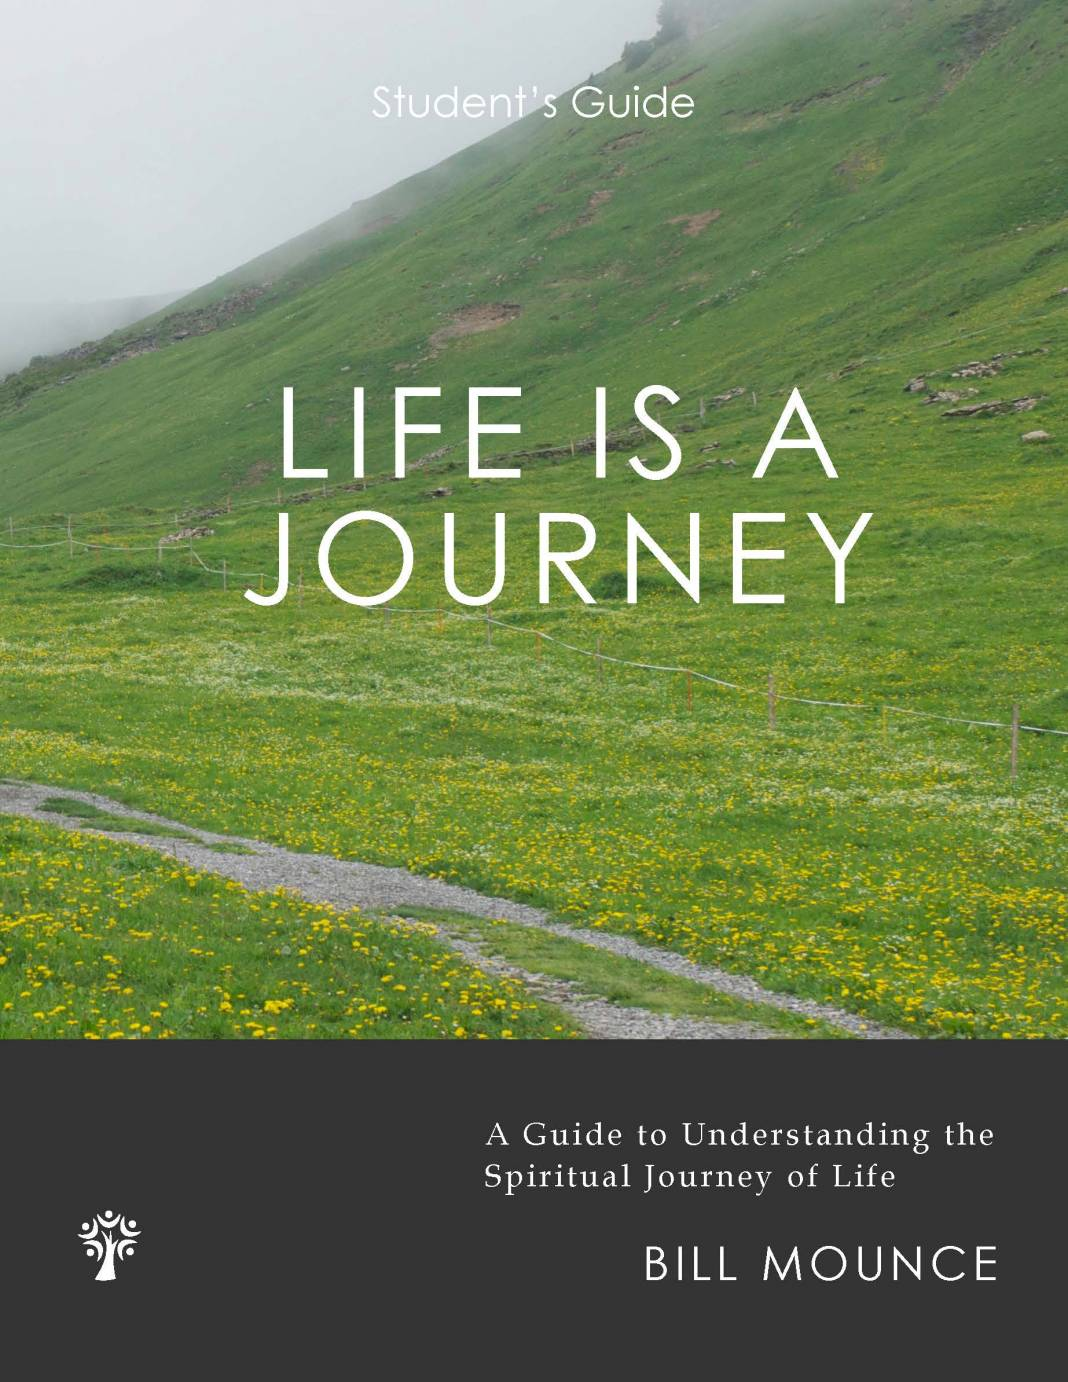 Life is a Journey Student's Guide